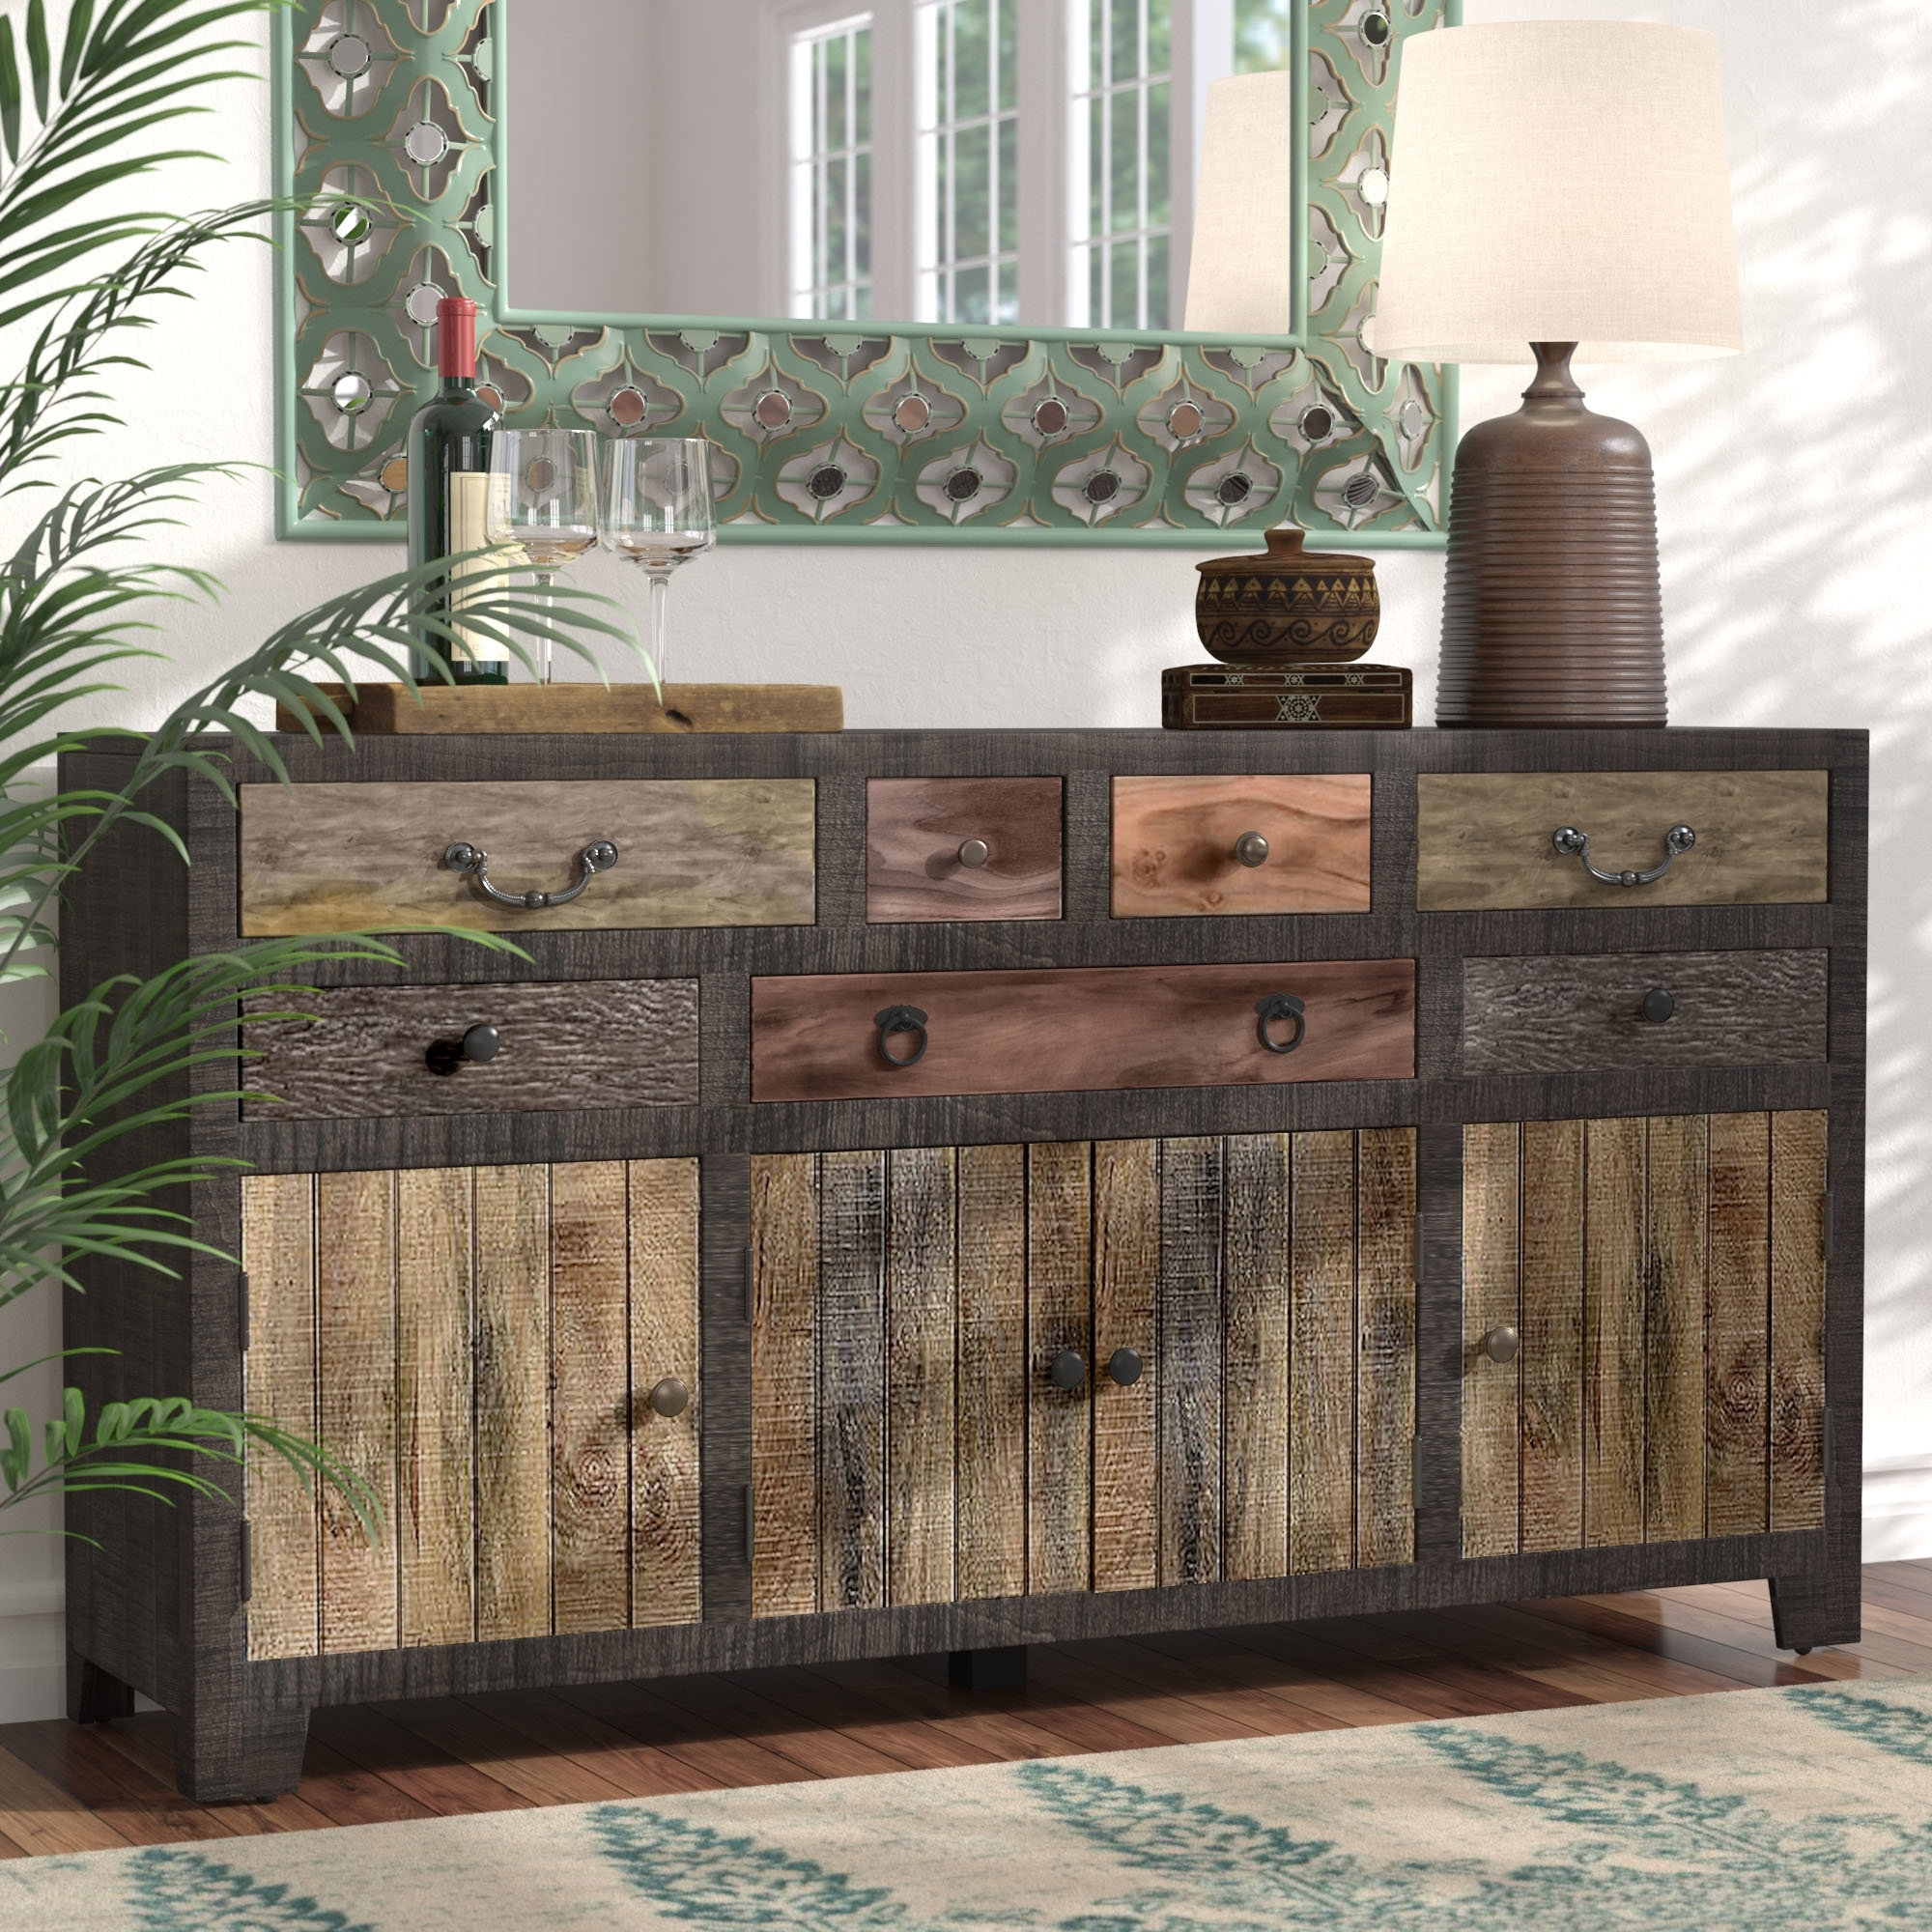 Inspiration about World Menagerie Moultry 7 Drawer 4 Door Sideboard & Reviews | Wayfair With Regard To Most Recent 4 Door 4 Drawer Metal Inserts Sideboards (#19 of 20)